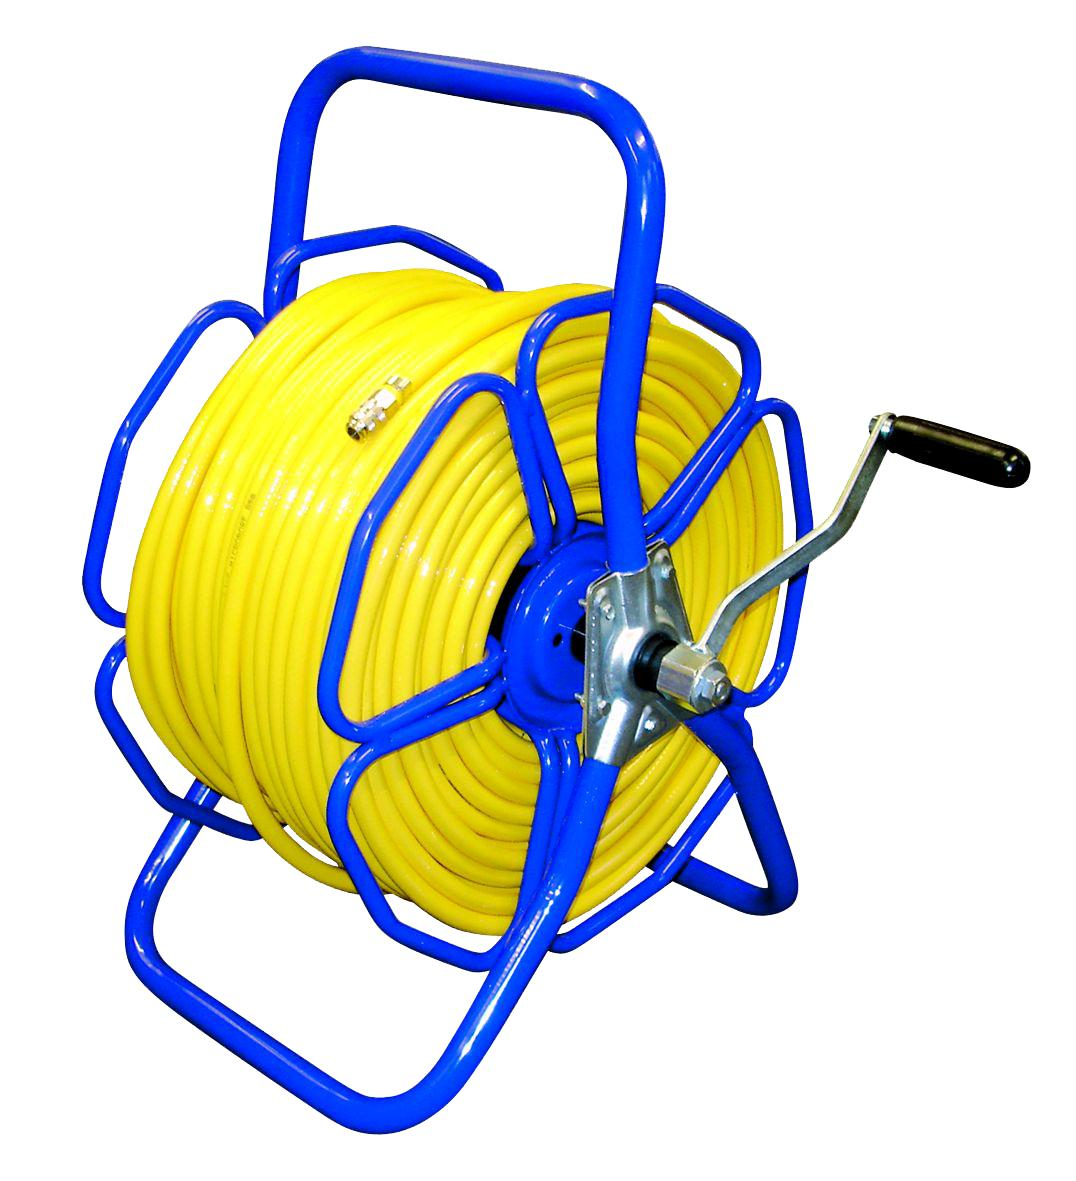 Metal-Freestanding-Hose-and-Fitting-Kit